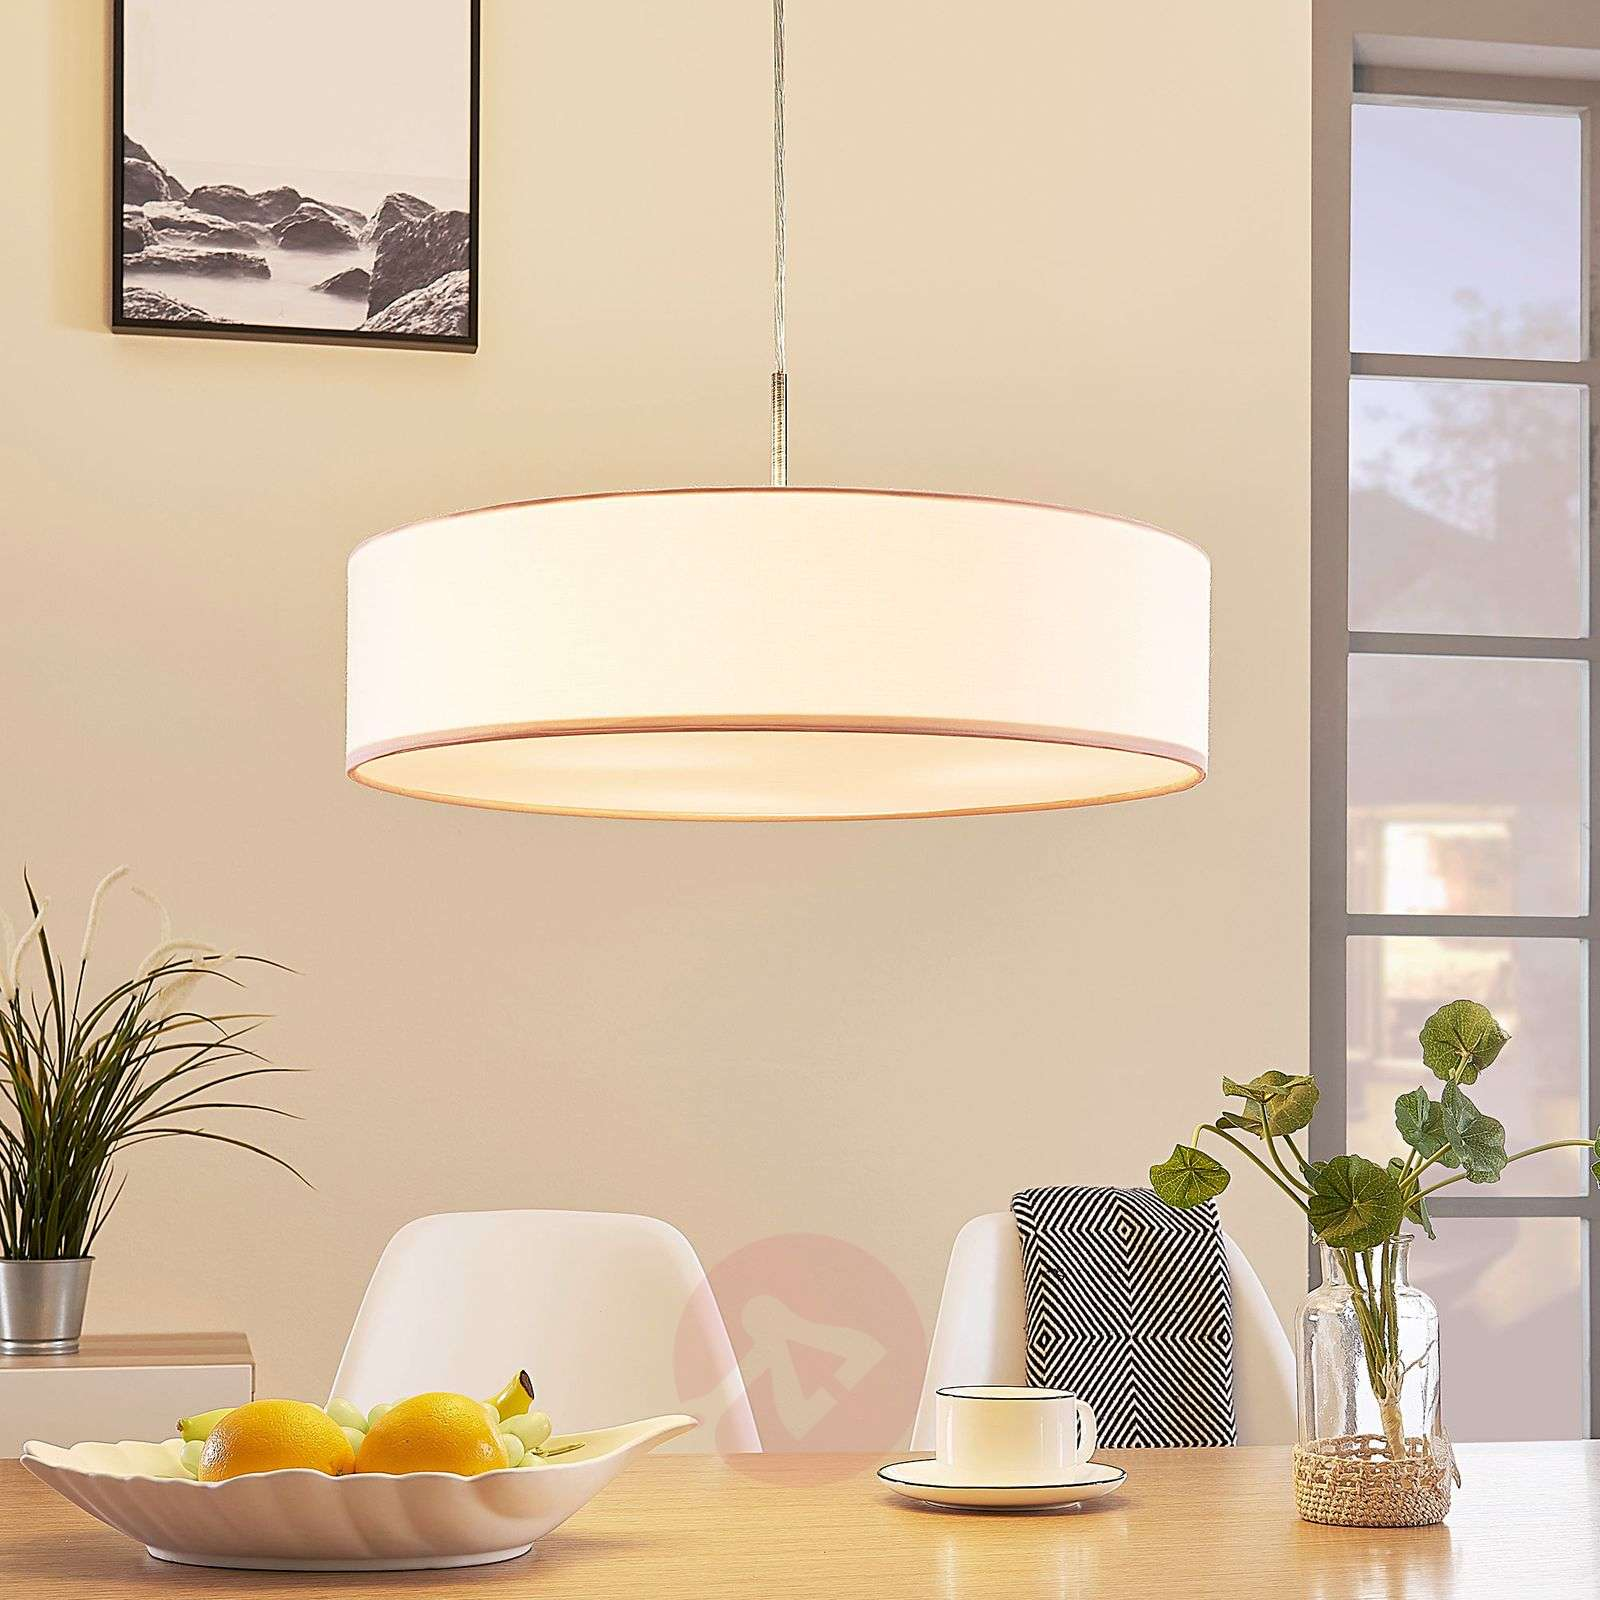 White Sebatin LED fabric pendant lamp-9620321-02